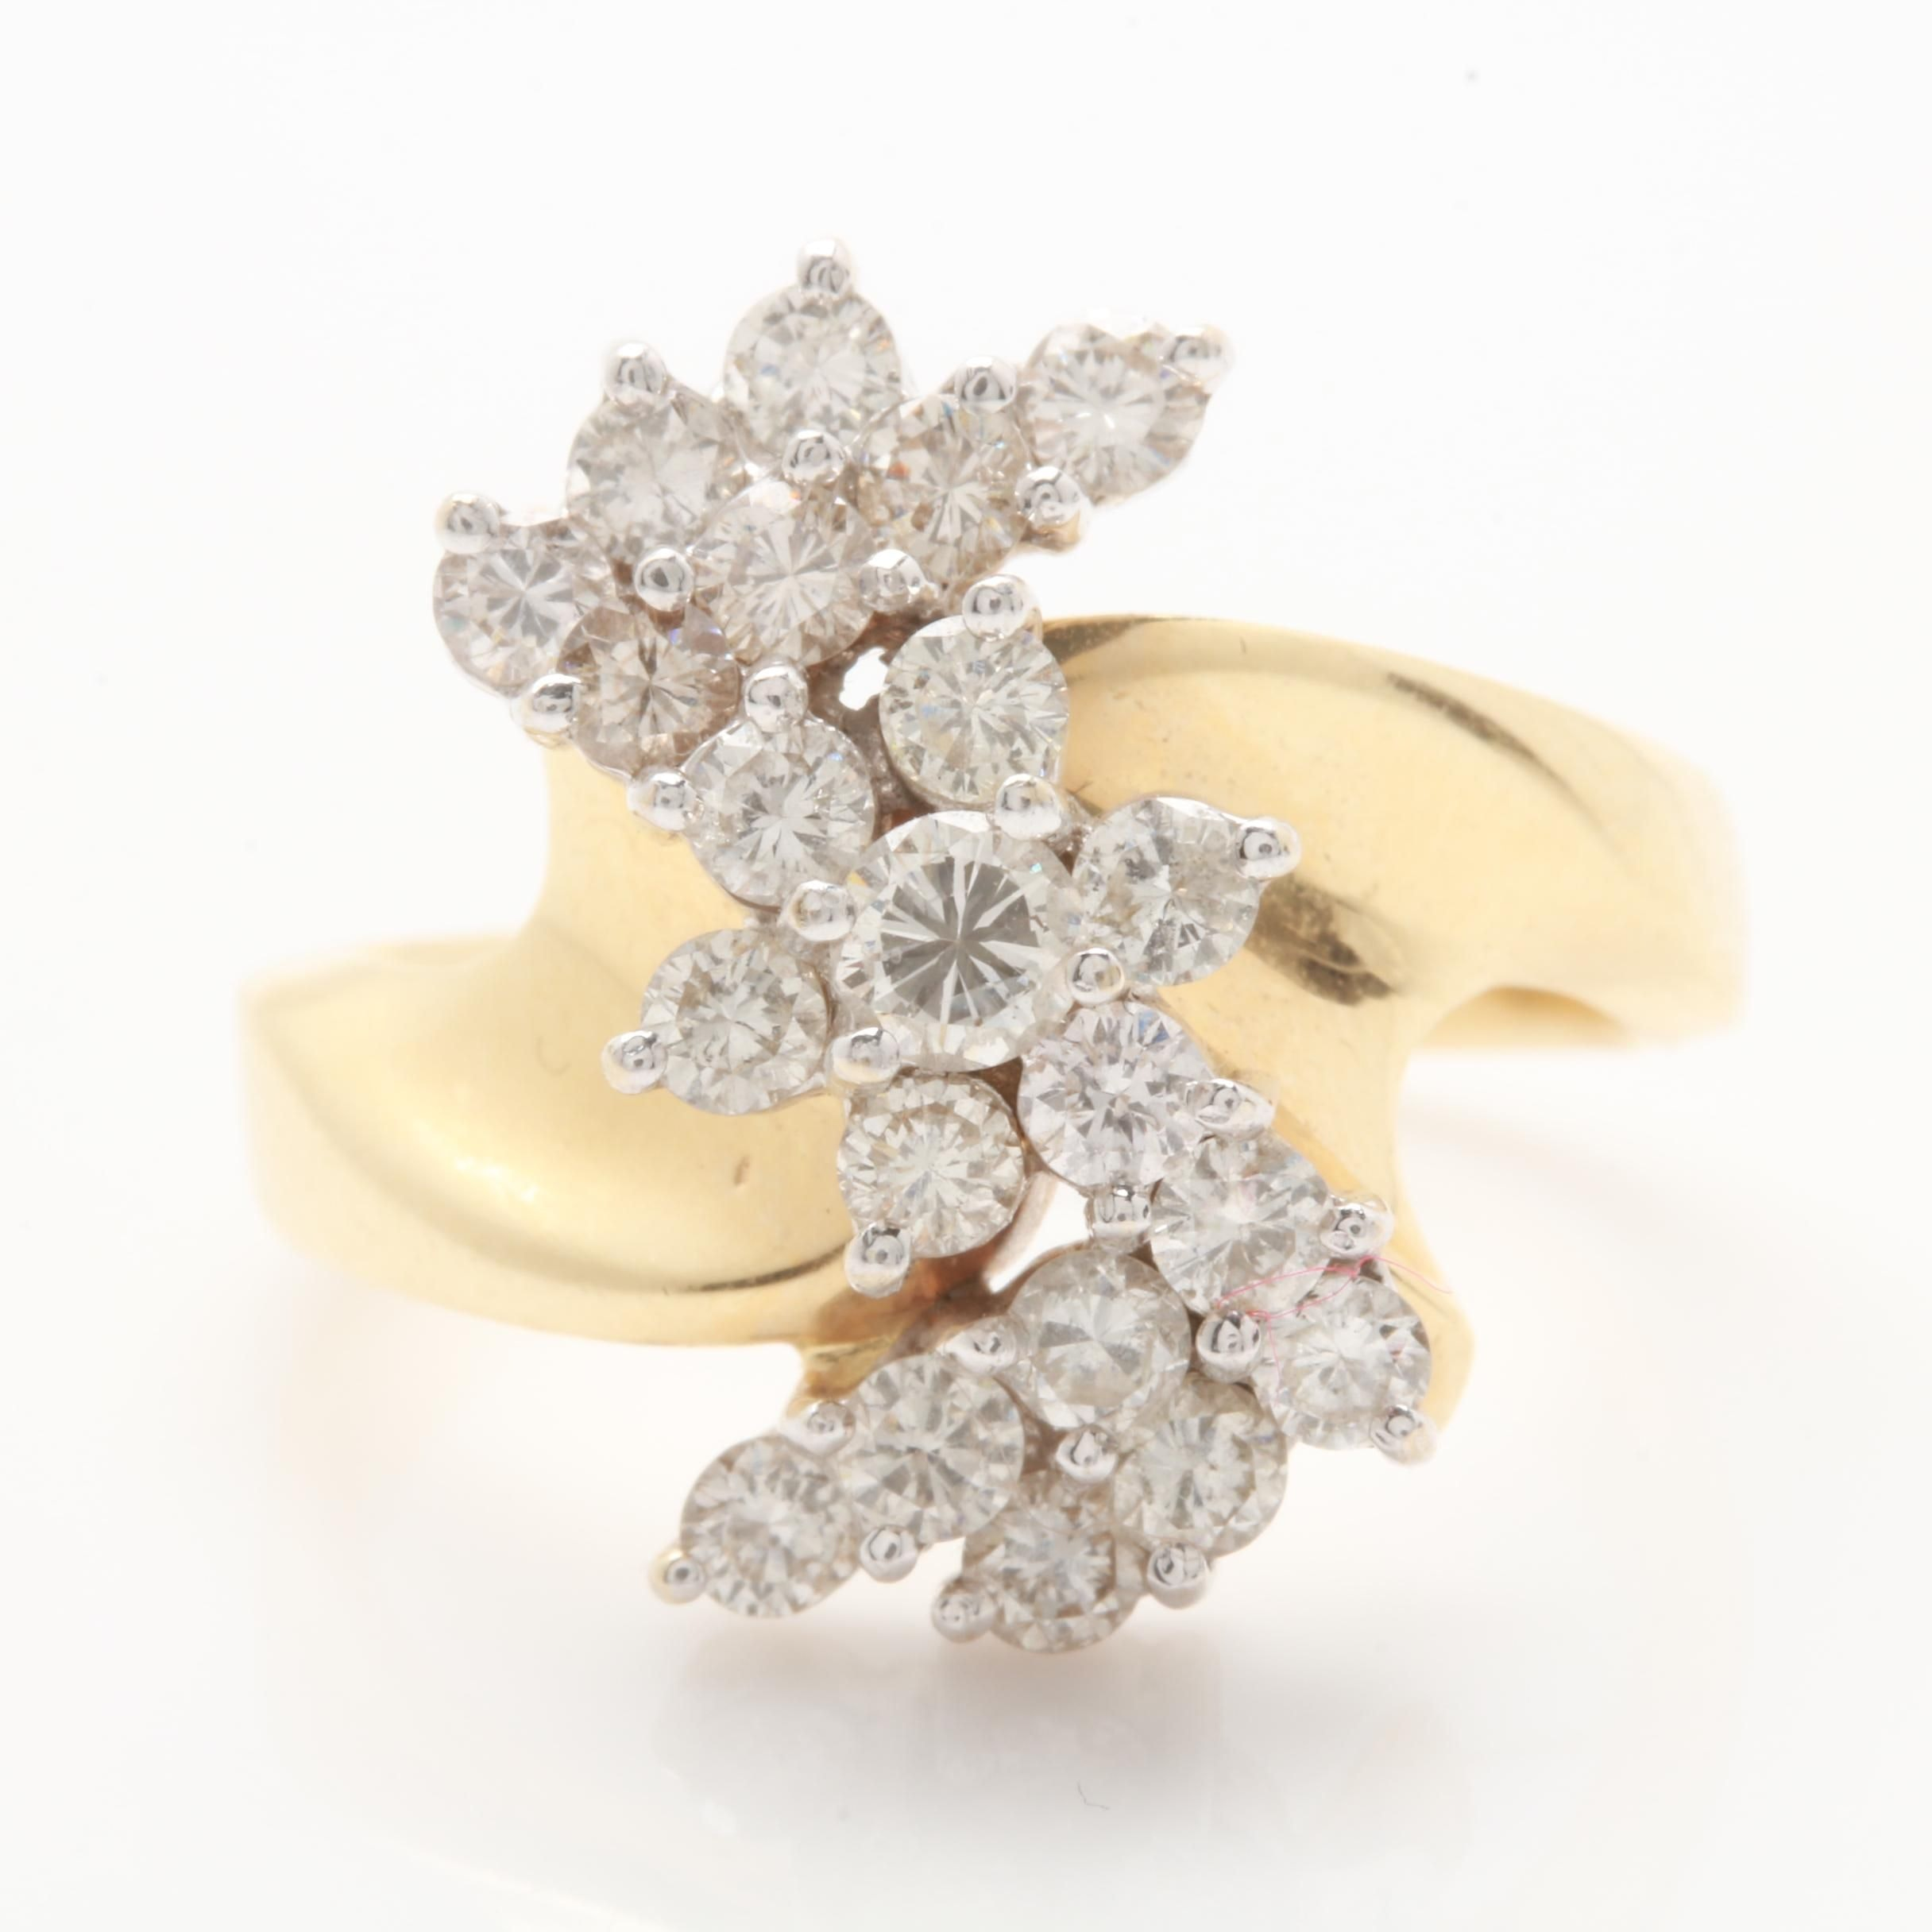 14K Yellow Gold 1.15 CTW Diamond Cluster Ring